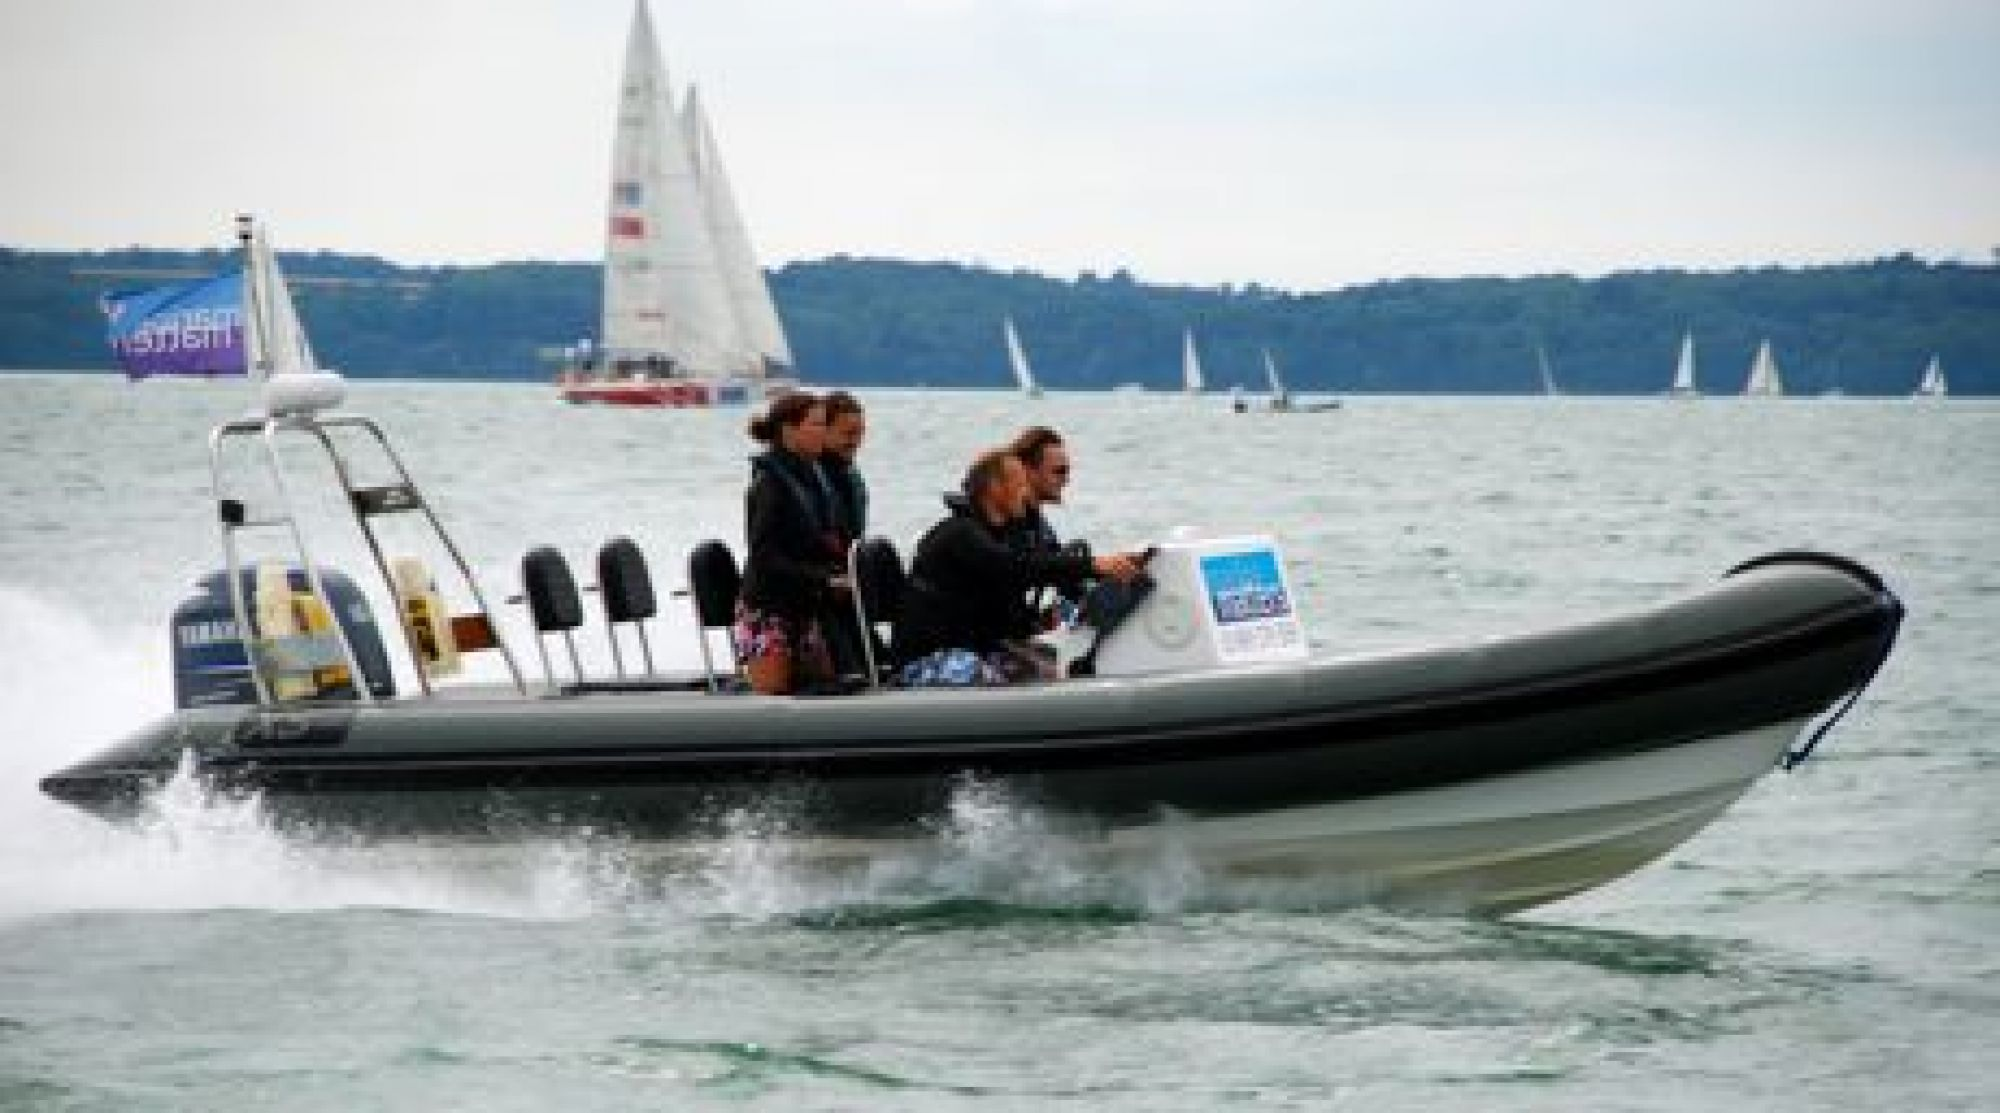 RYA Advanced Powerboat Instructor candidates teaching high speed turns